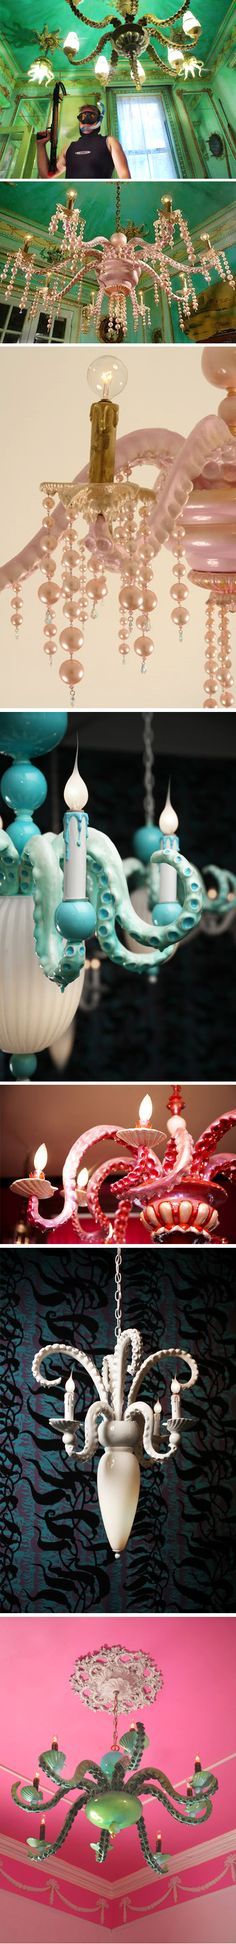 adam wallacavage tentacle chandeliers...love cephalapods